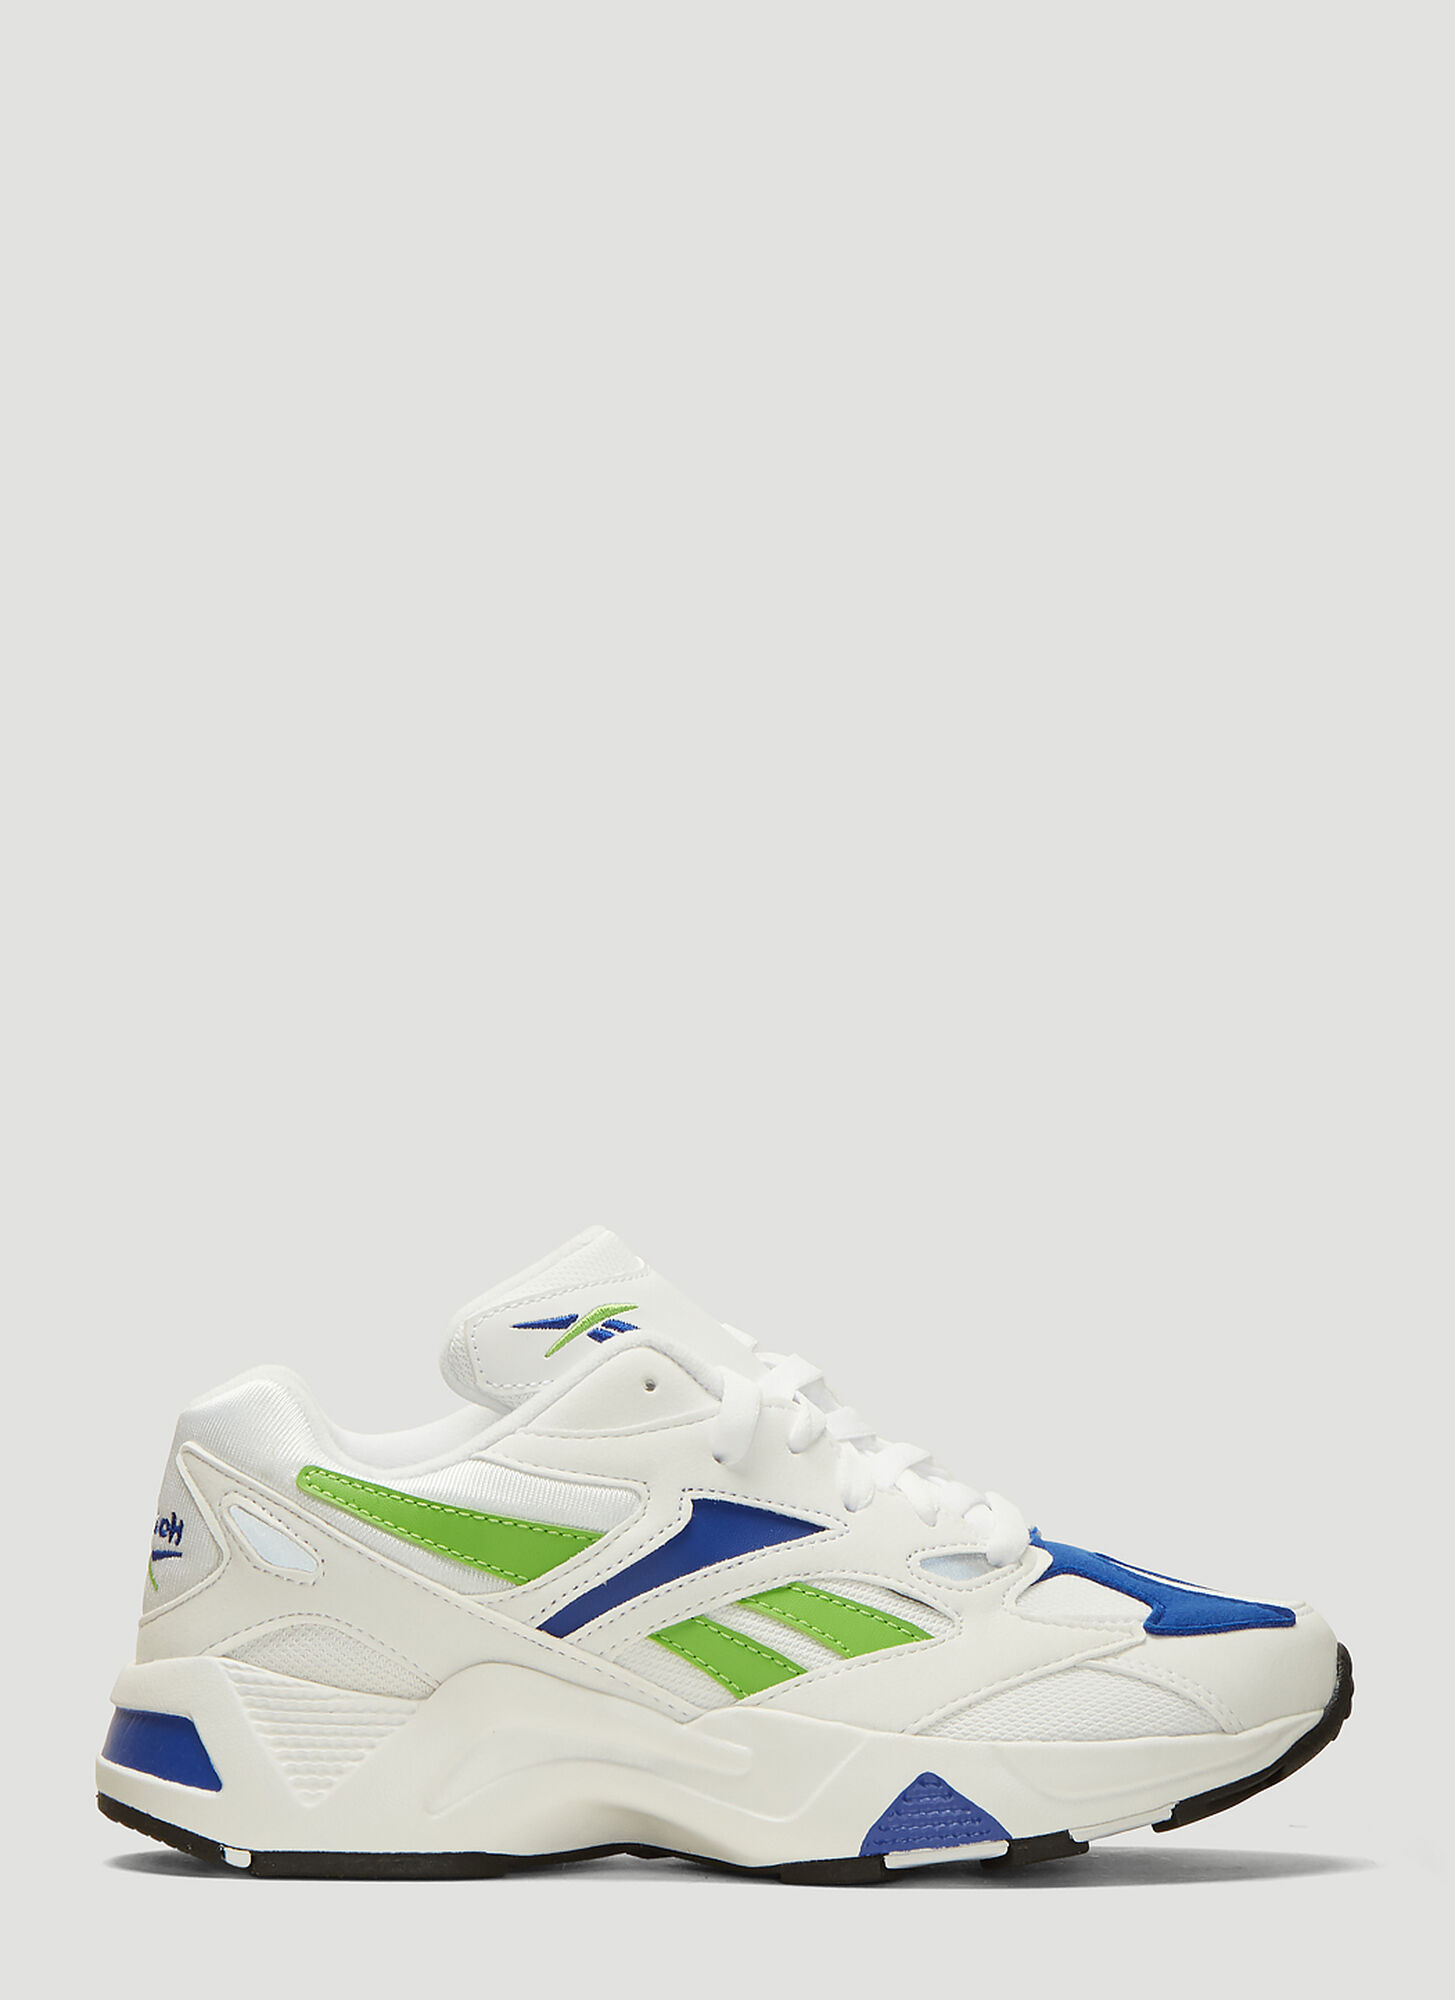 Reebok Aztrek 96 Sneakers in White